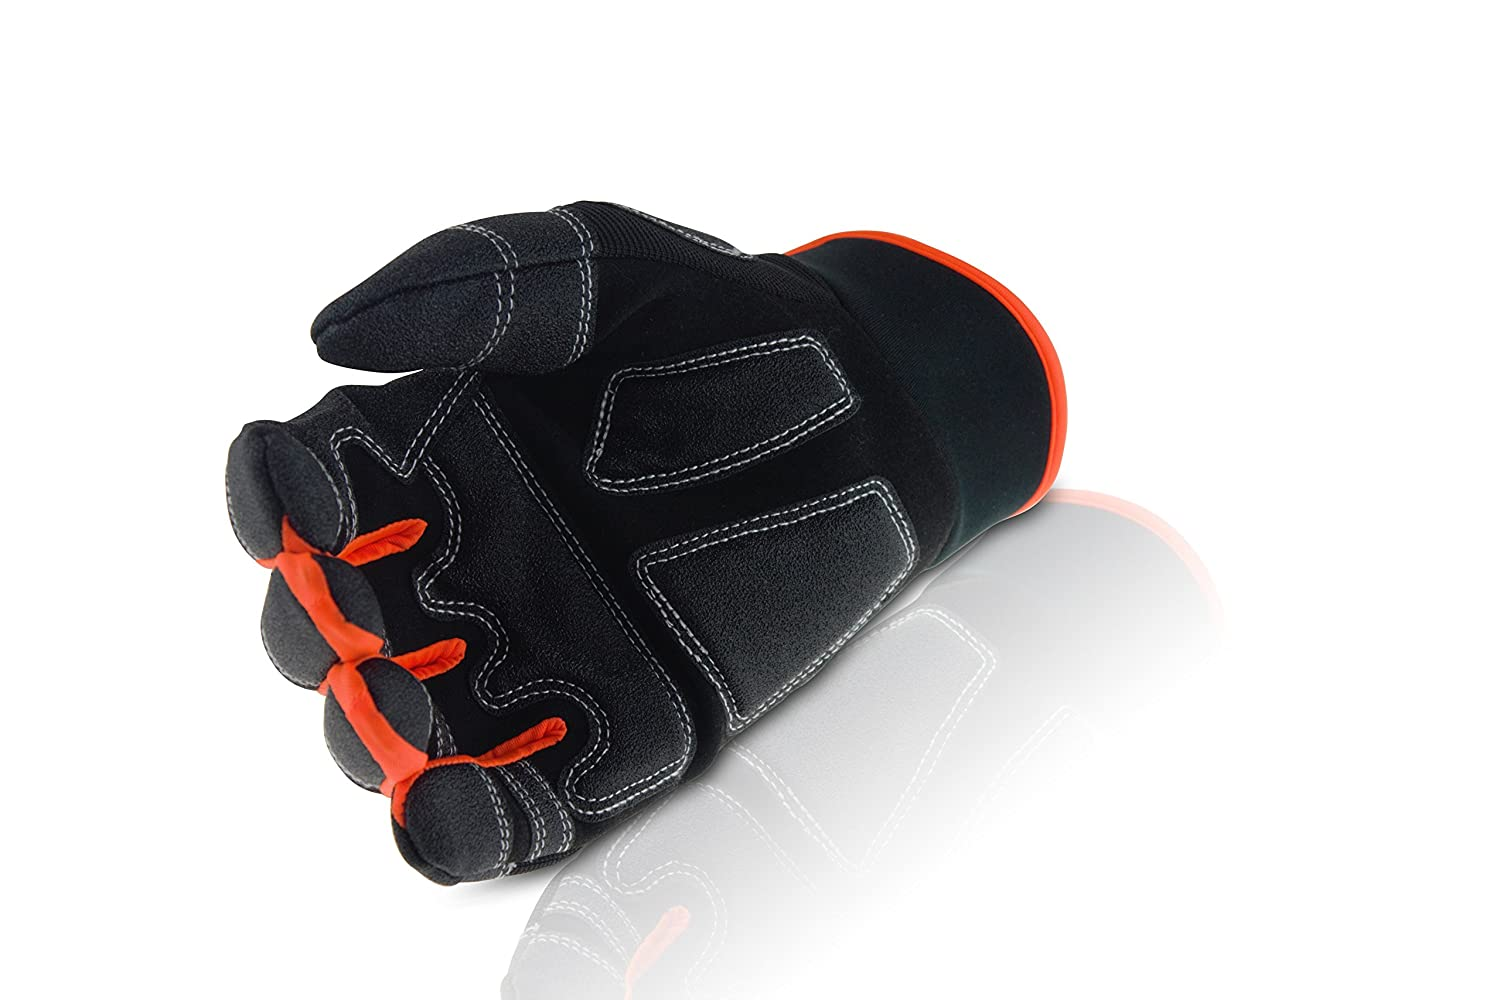 Superior Anti Slip Grip with a Cosy Fit for Better Handling and Control ToolFreak TF7 Fingerless Work Gloves Bonus Product Included Padded Palms to Better Absorb Vibration